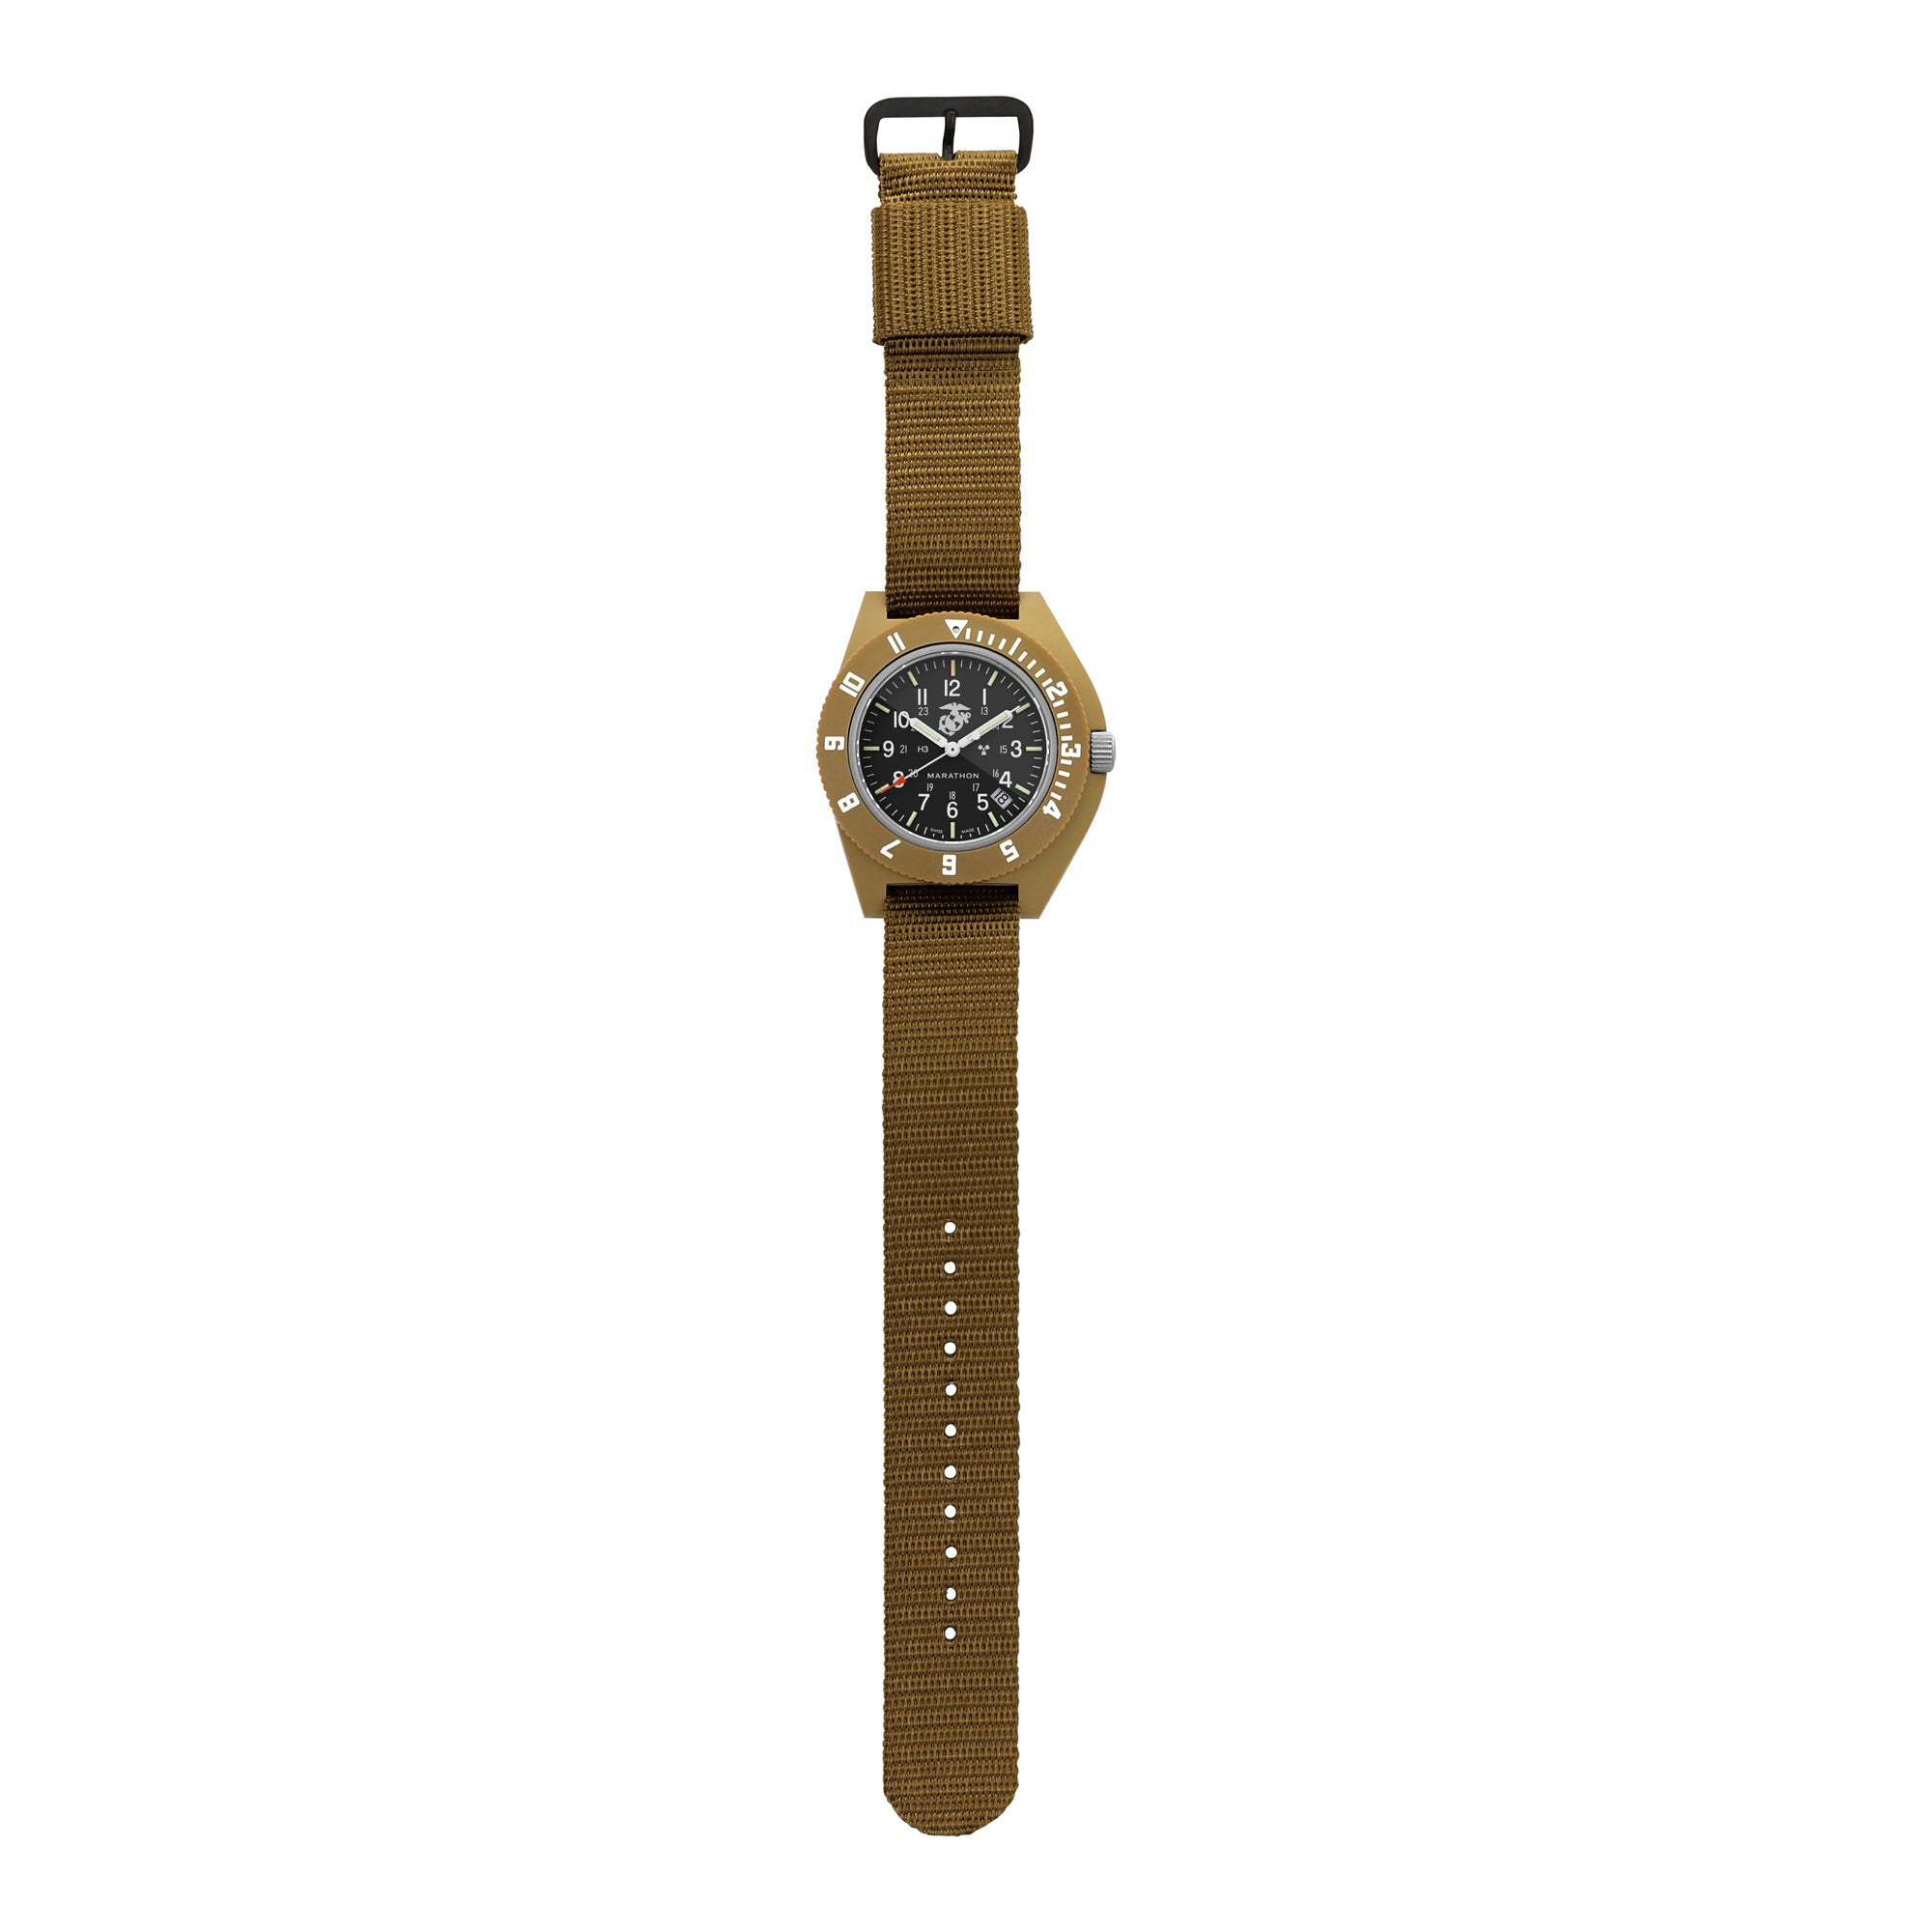 Desert Tan Pilot's Navigator with Date - 41mm